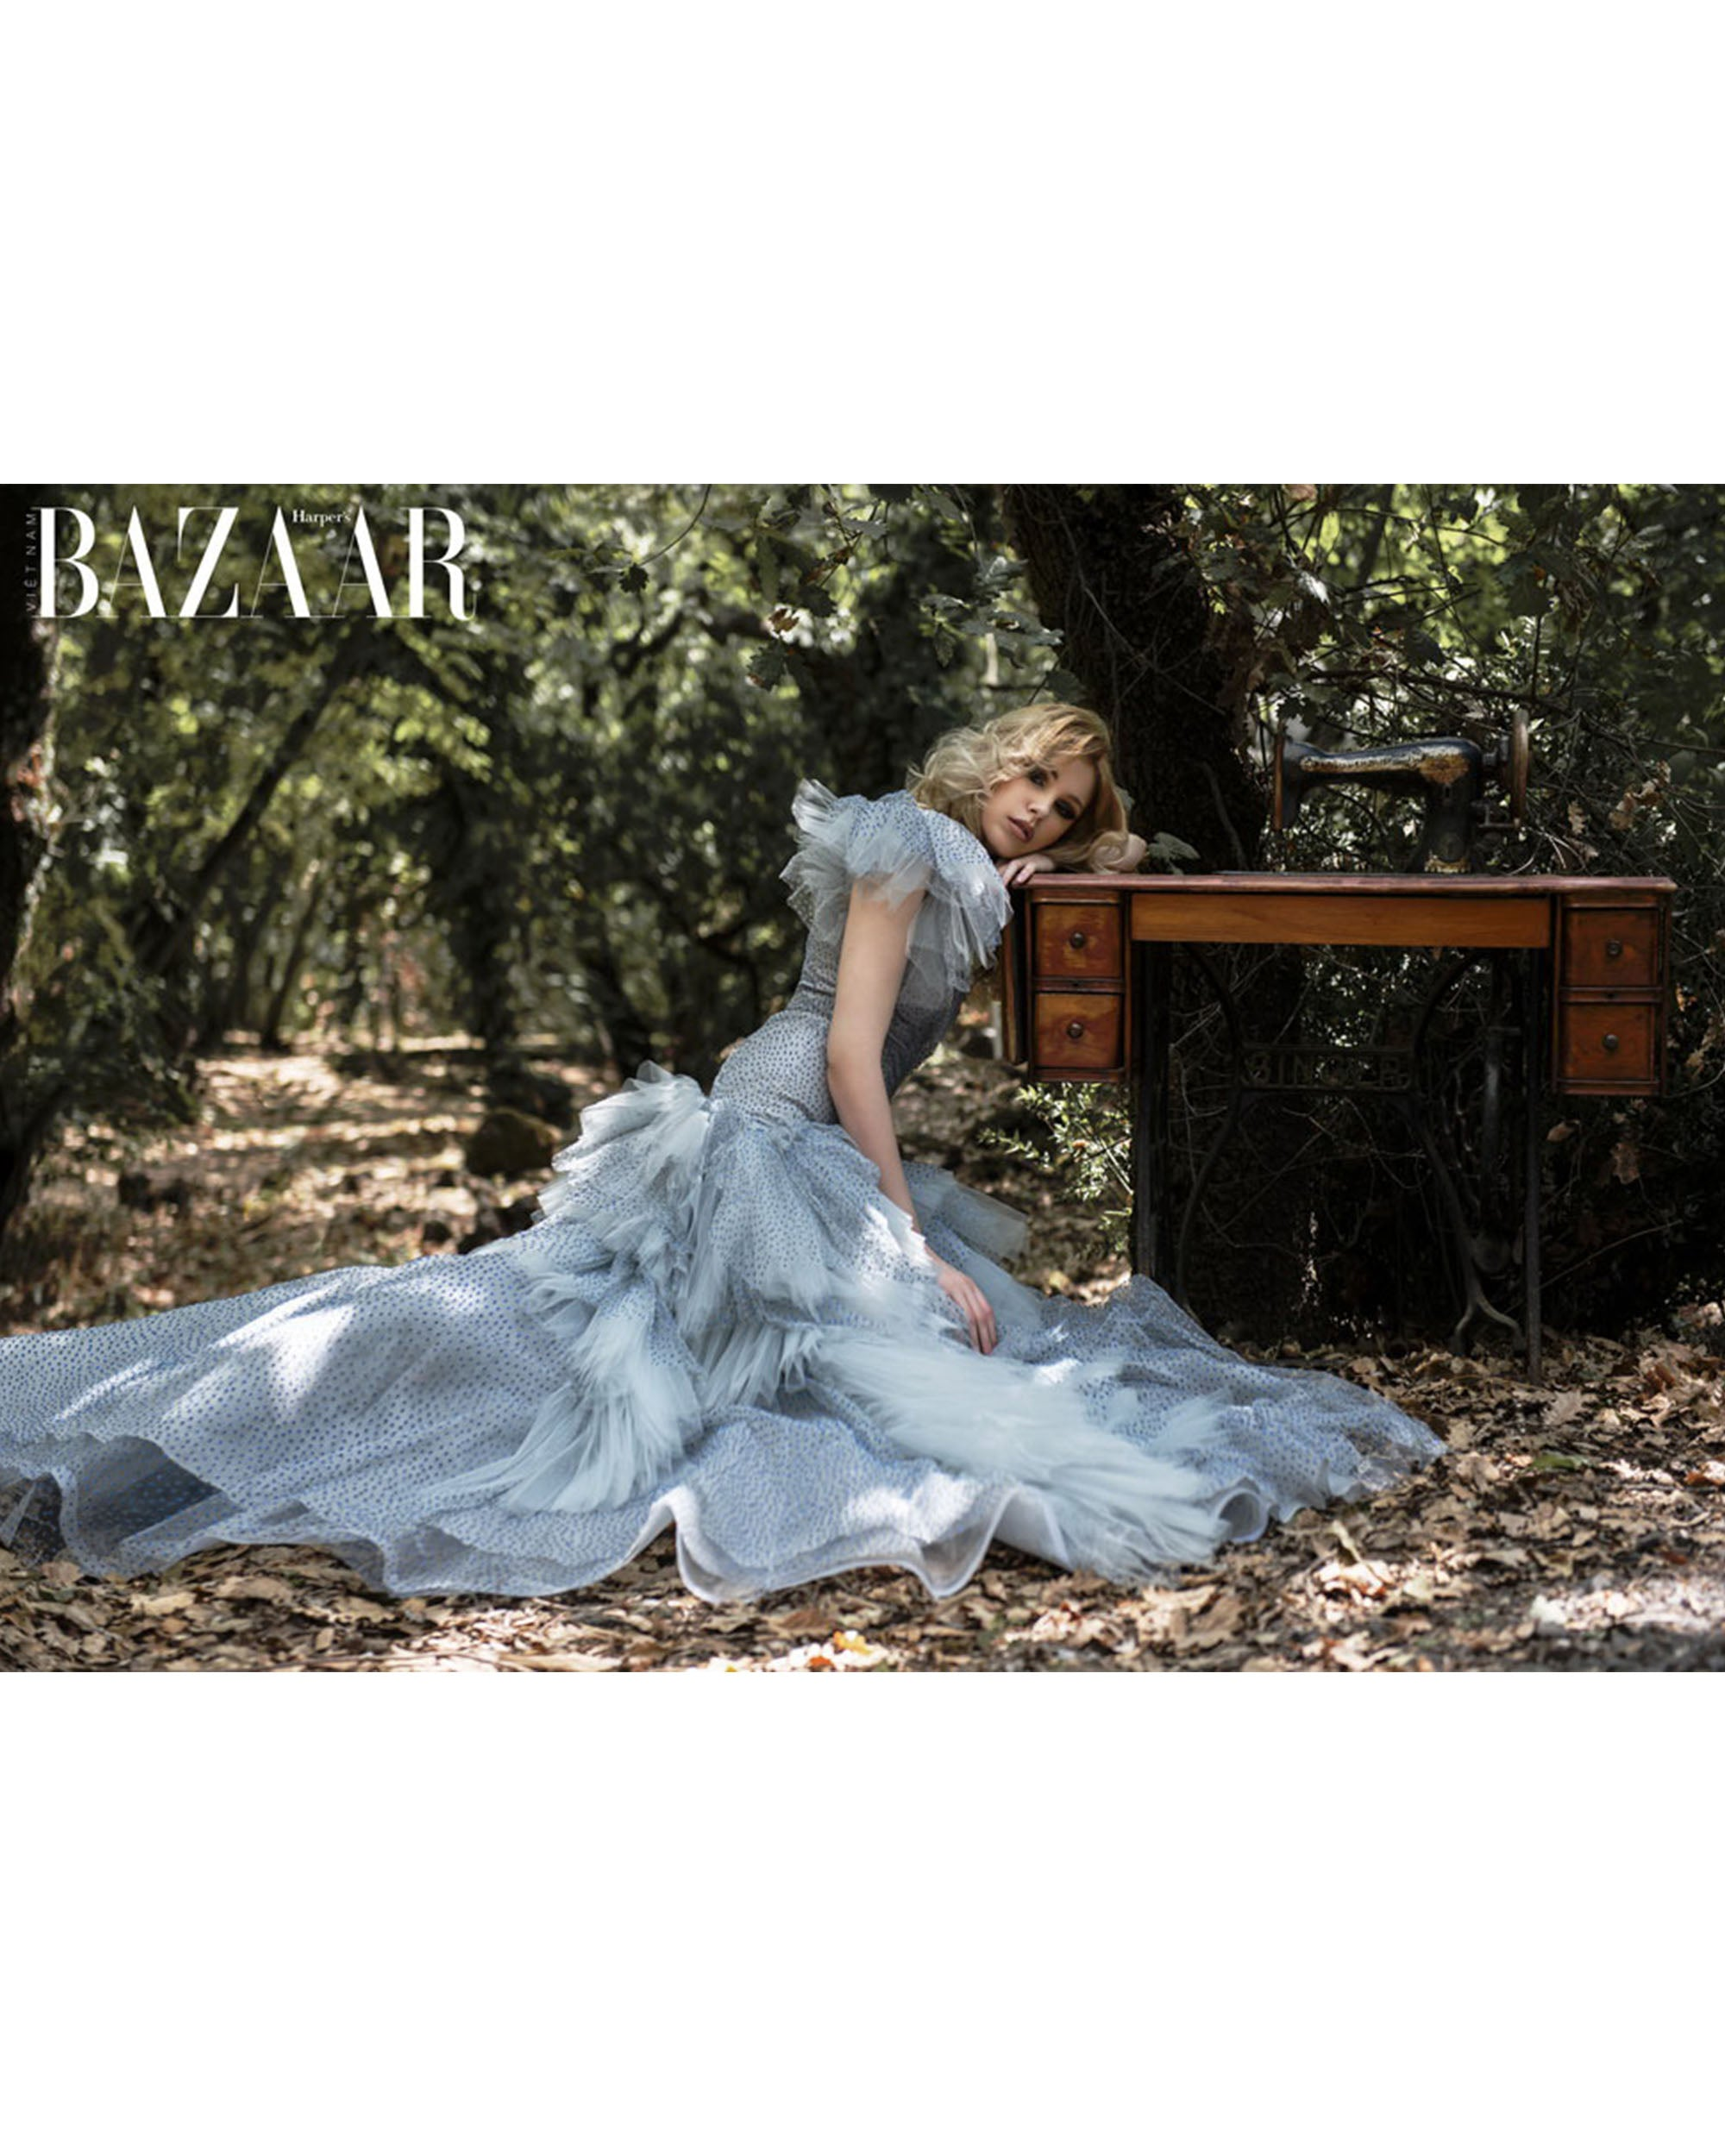 Margot Des Alyses In Harper's Bazaar Magazine